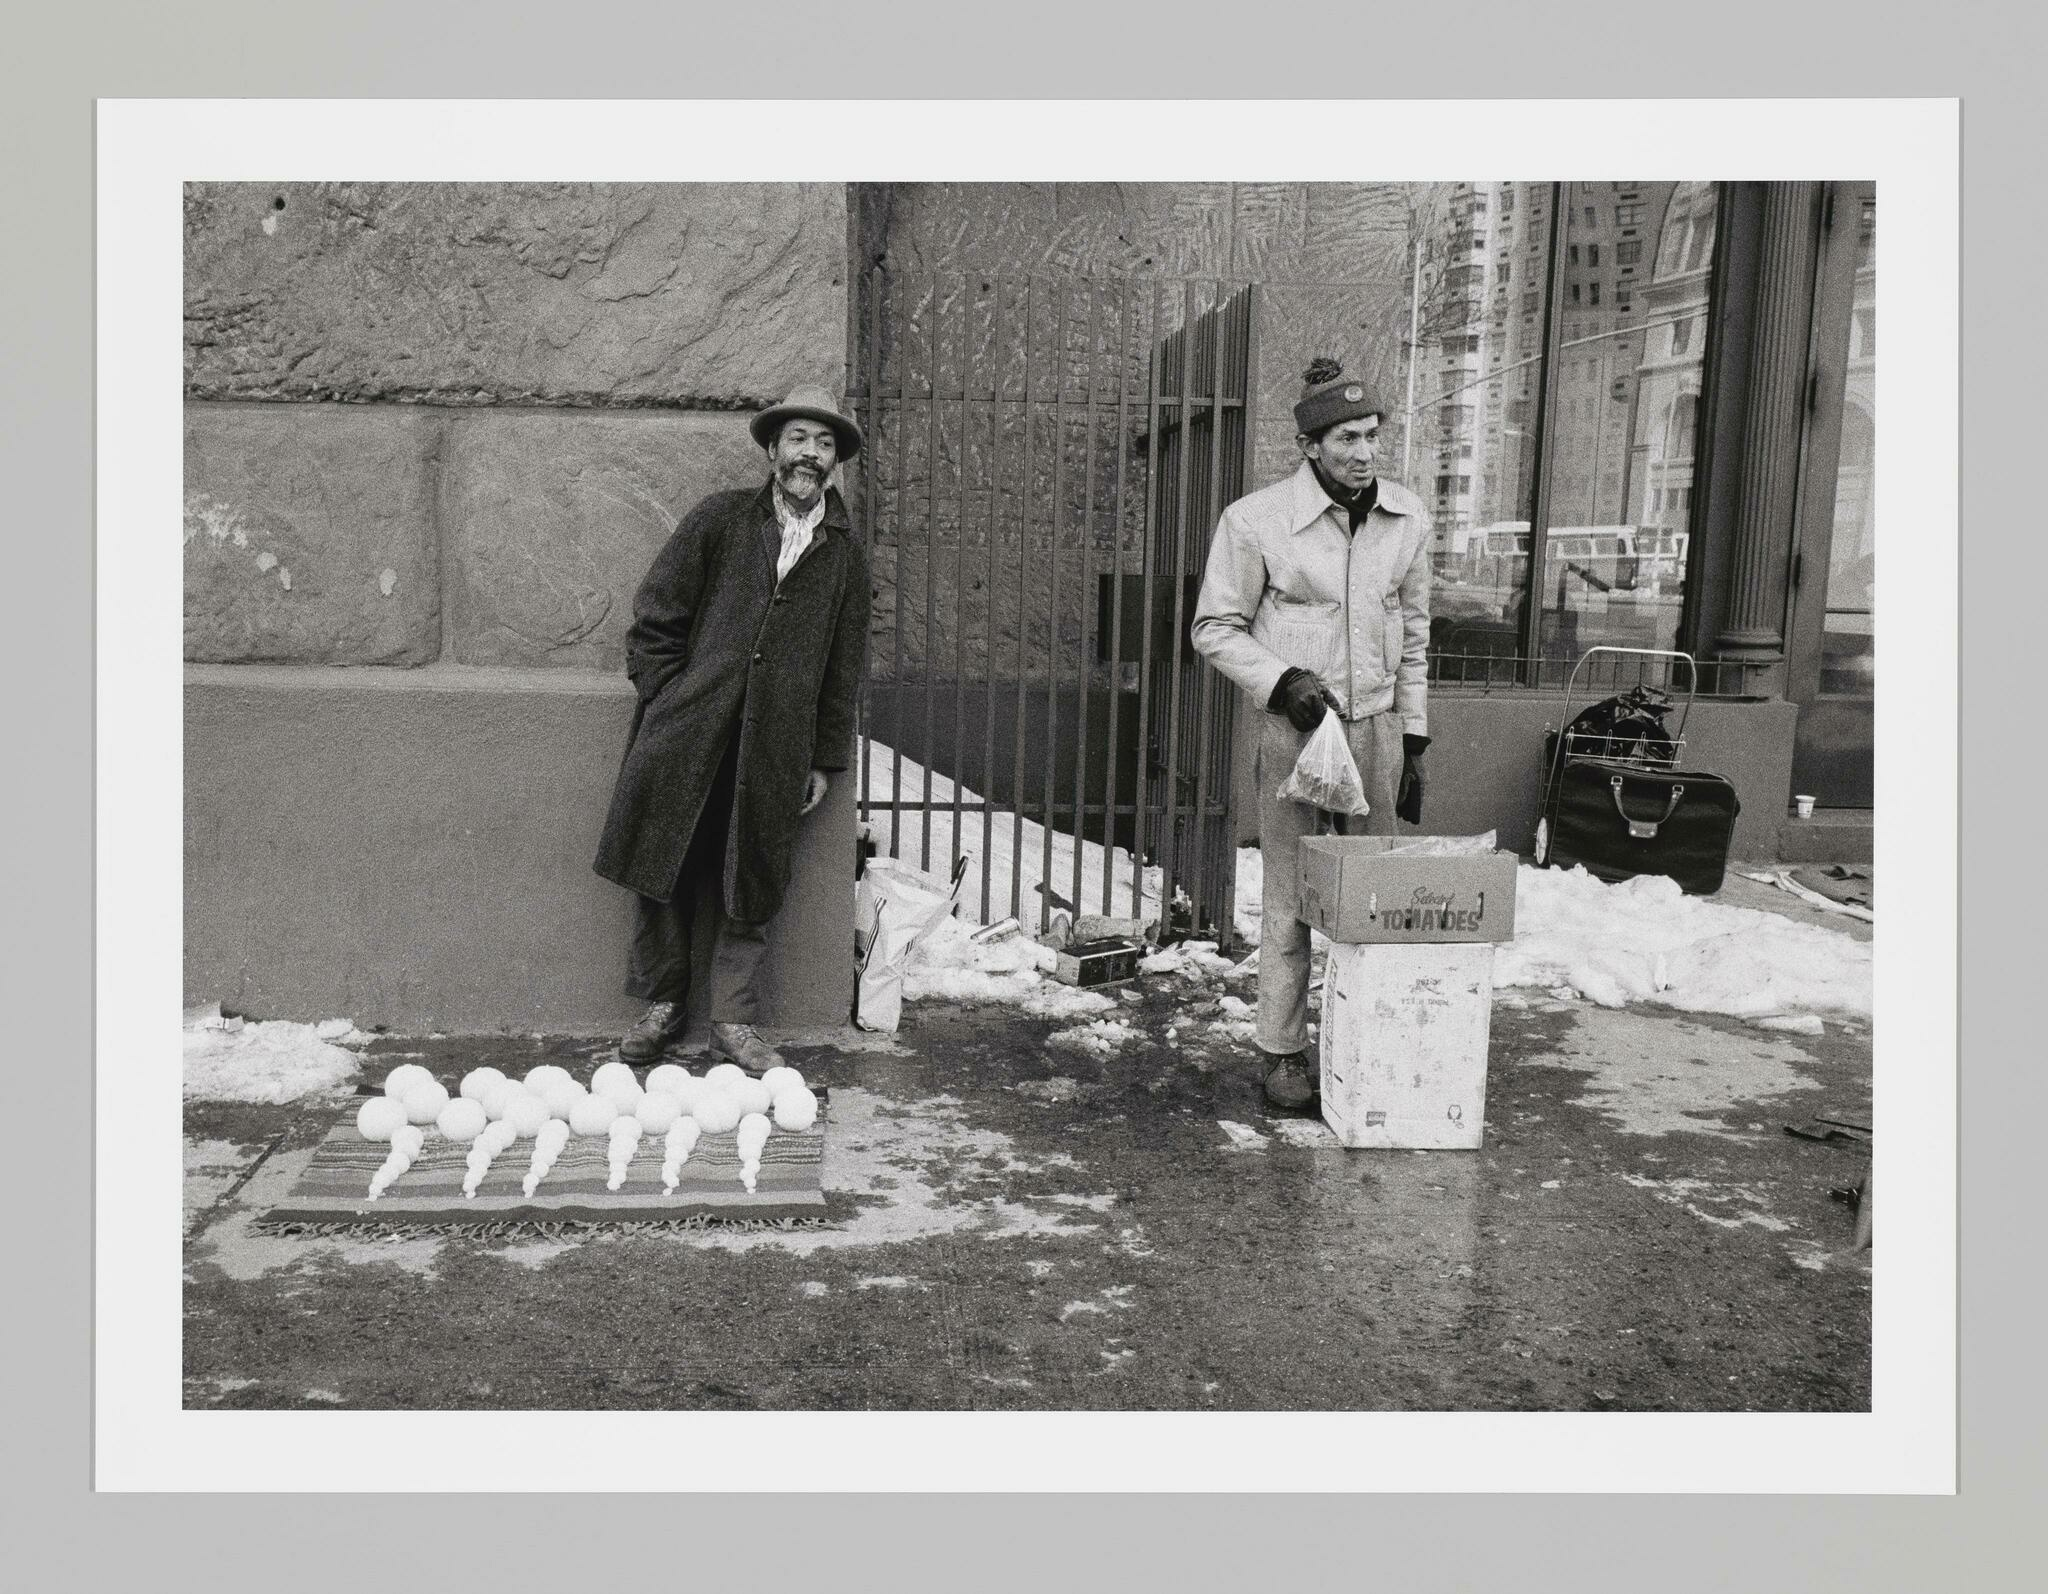 Two men stand on a snowy sidewalk selling items. The man on the left, artist David Hammons, sells differently sized snowballs.